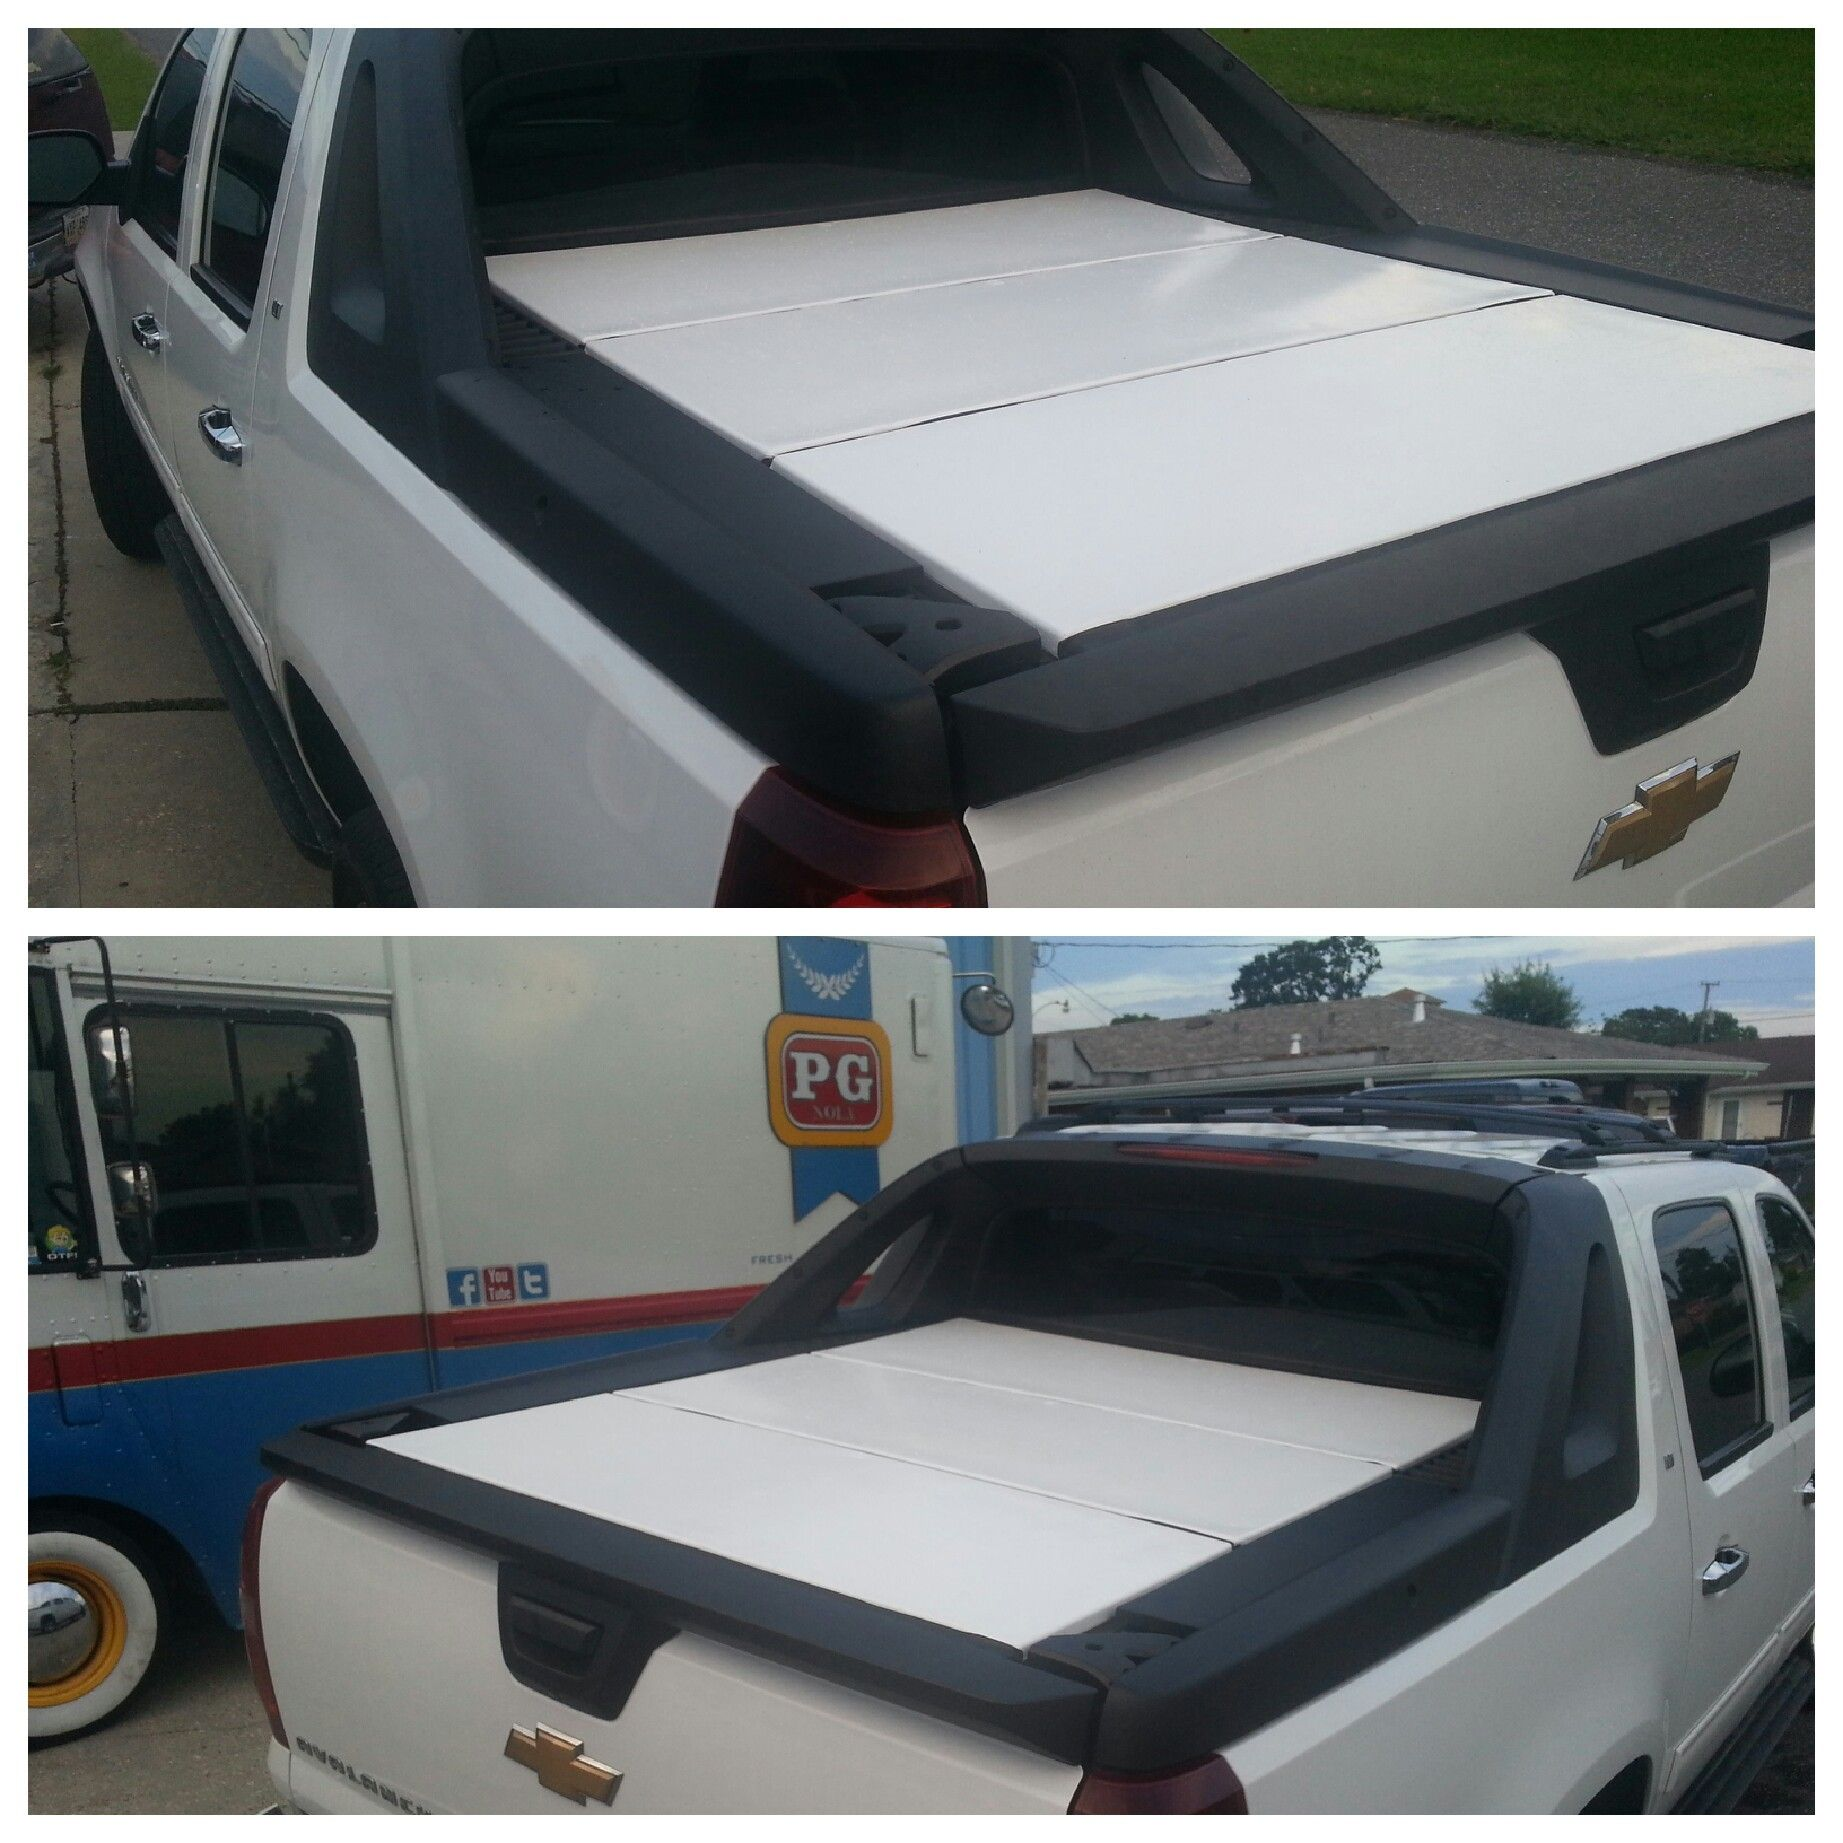 Last Install For The Day Gloss White Avalanche Bed Cover Wrap Pgnola Avalanche Bedcover Coverwrap Nola Neworlea Chevy Avalanche Chevy Avalanche